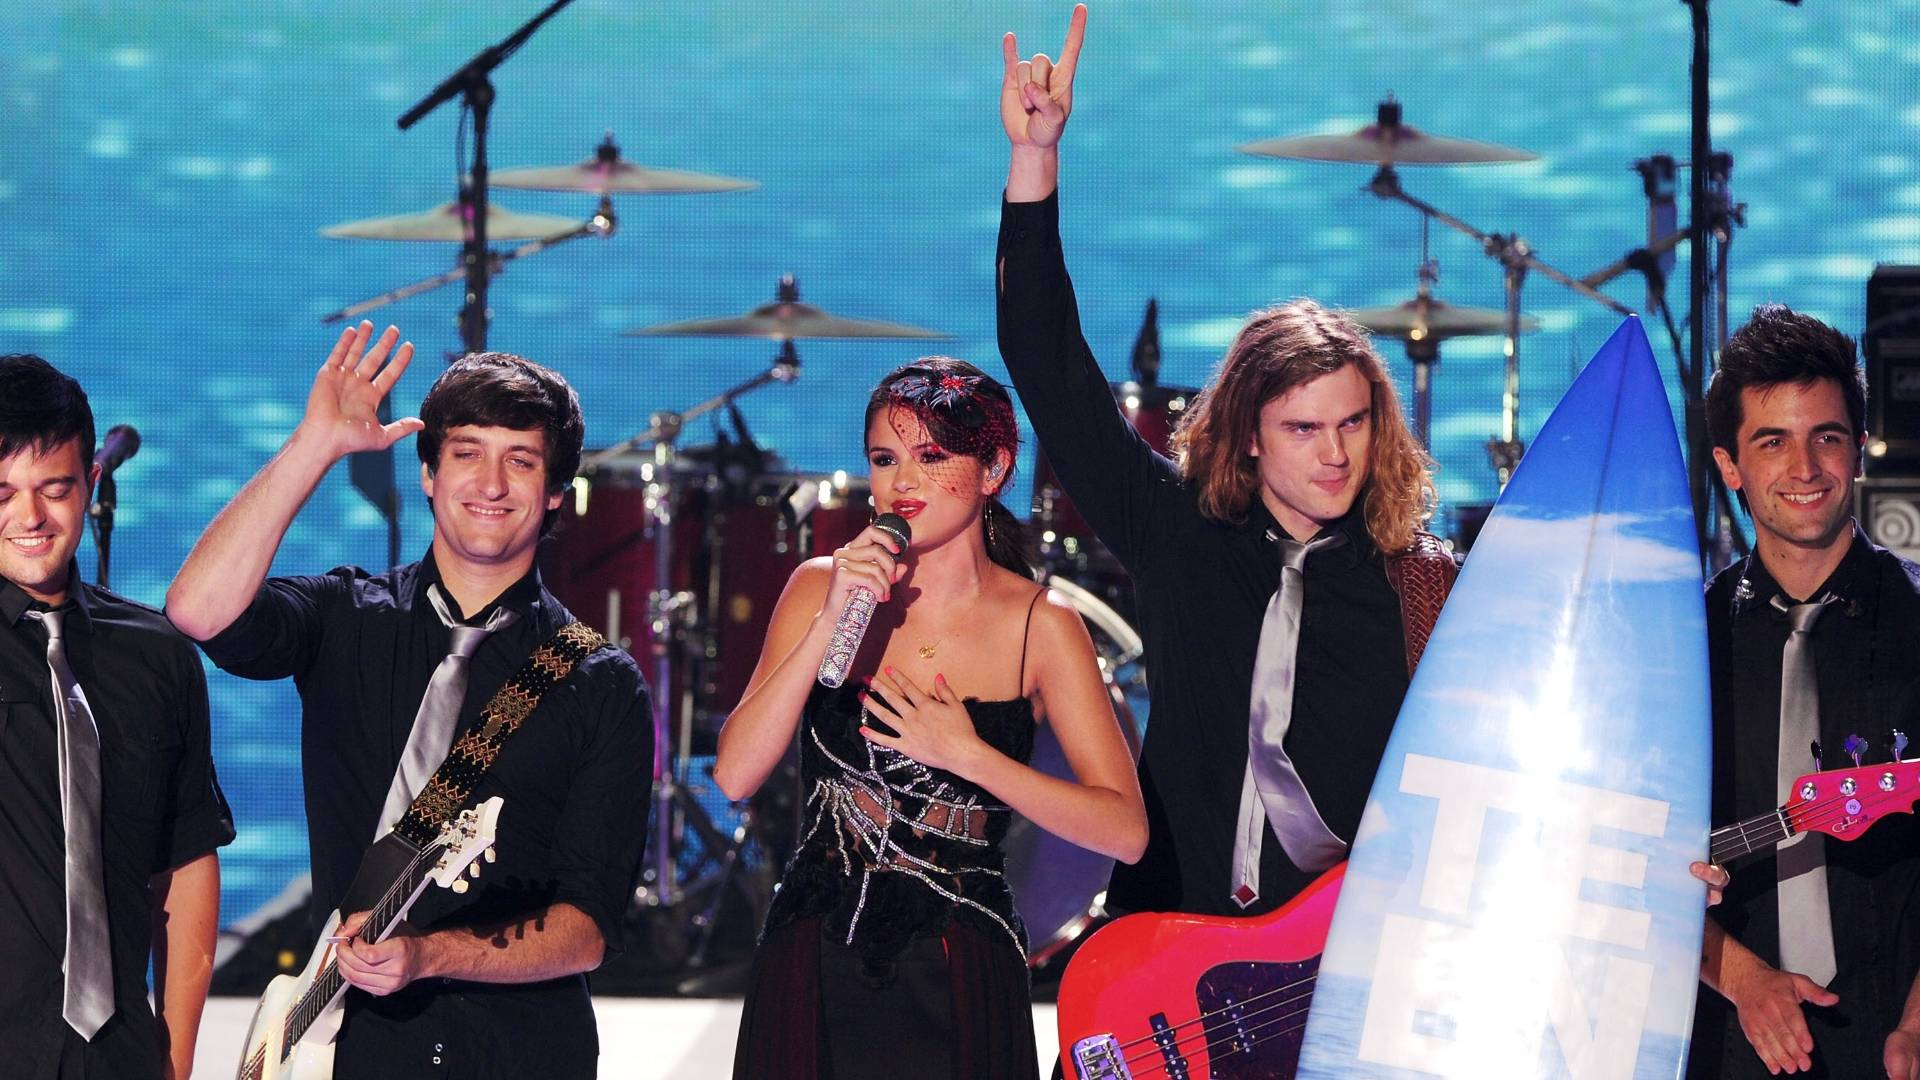 Selena Gomez e seu grupo, The Scene, agradecem prmio do Teen Choice, em Hollywood (7/8/2011)